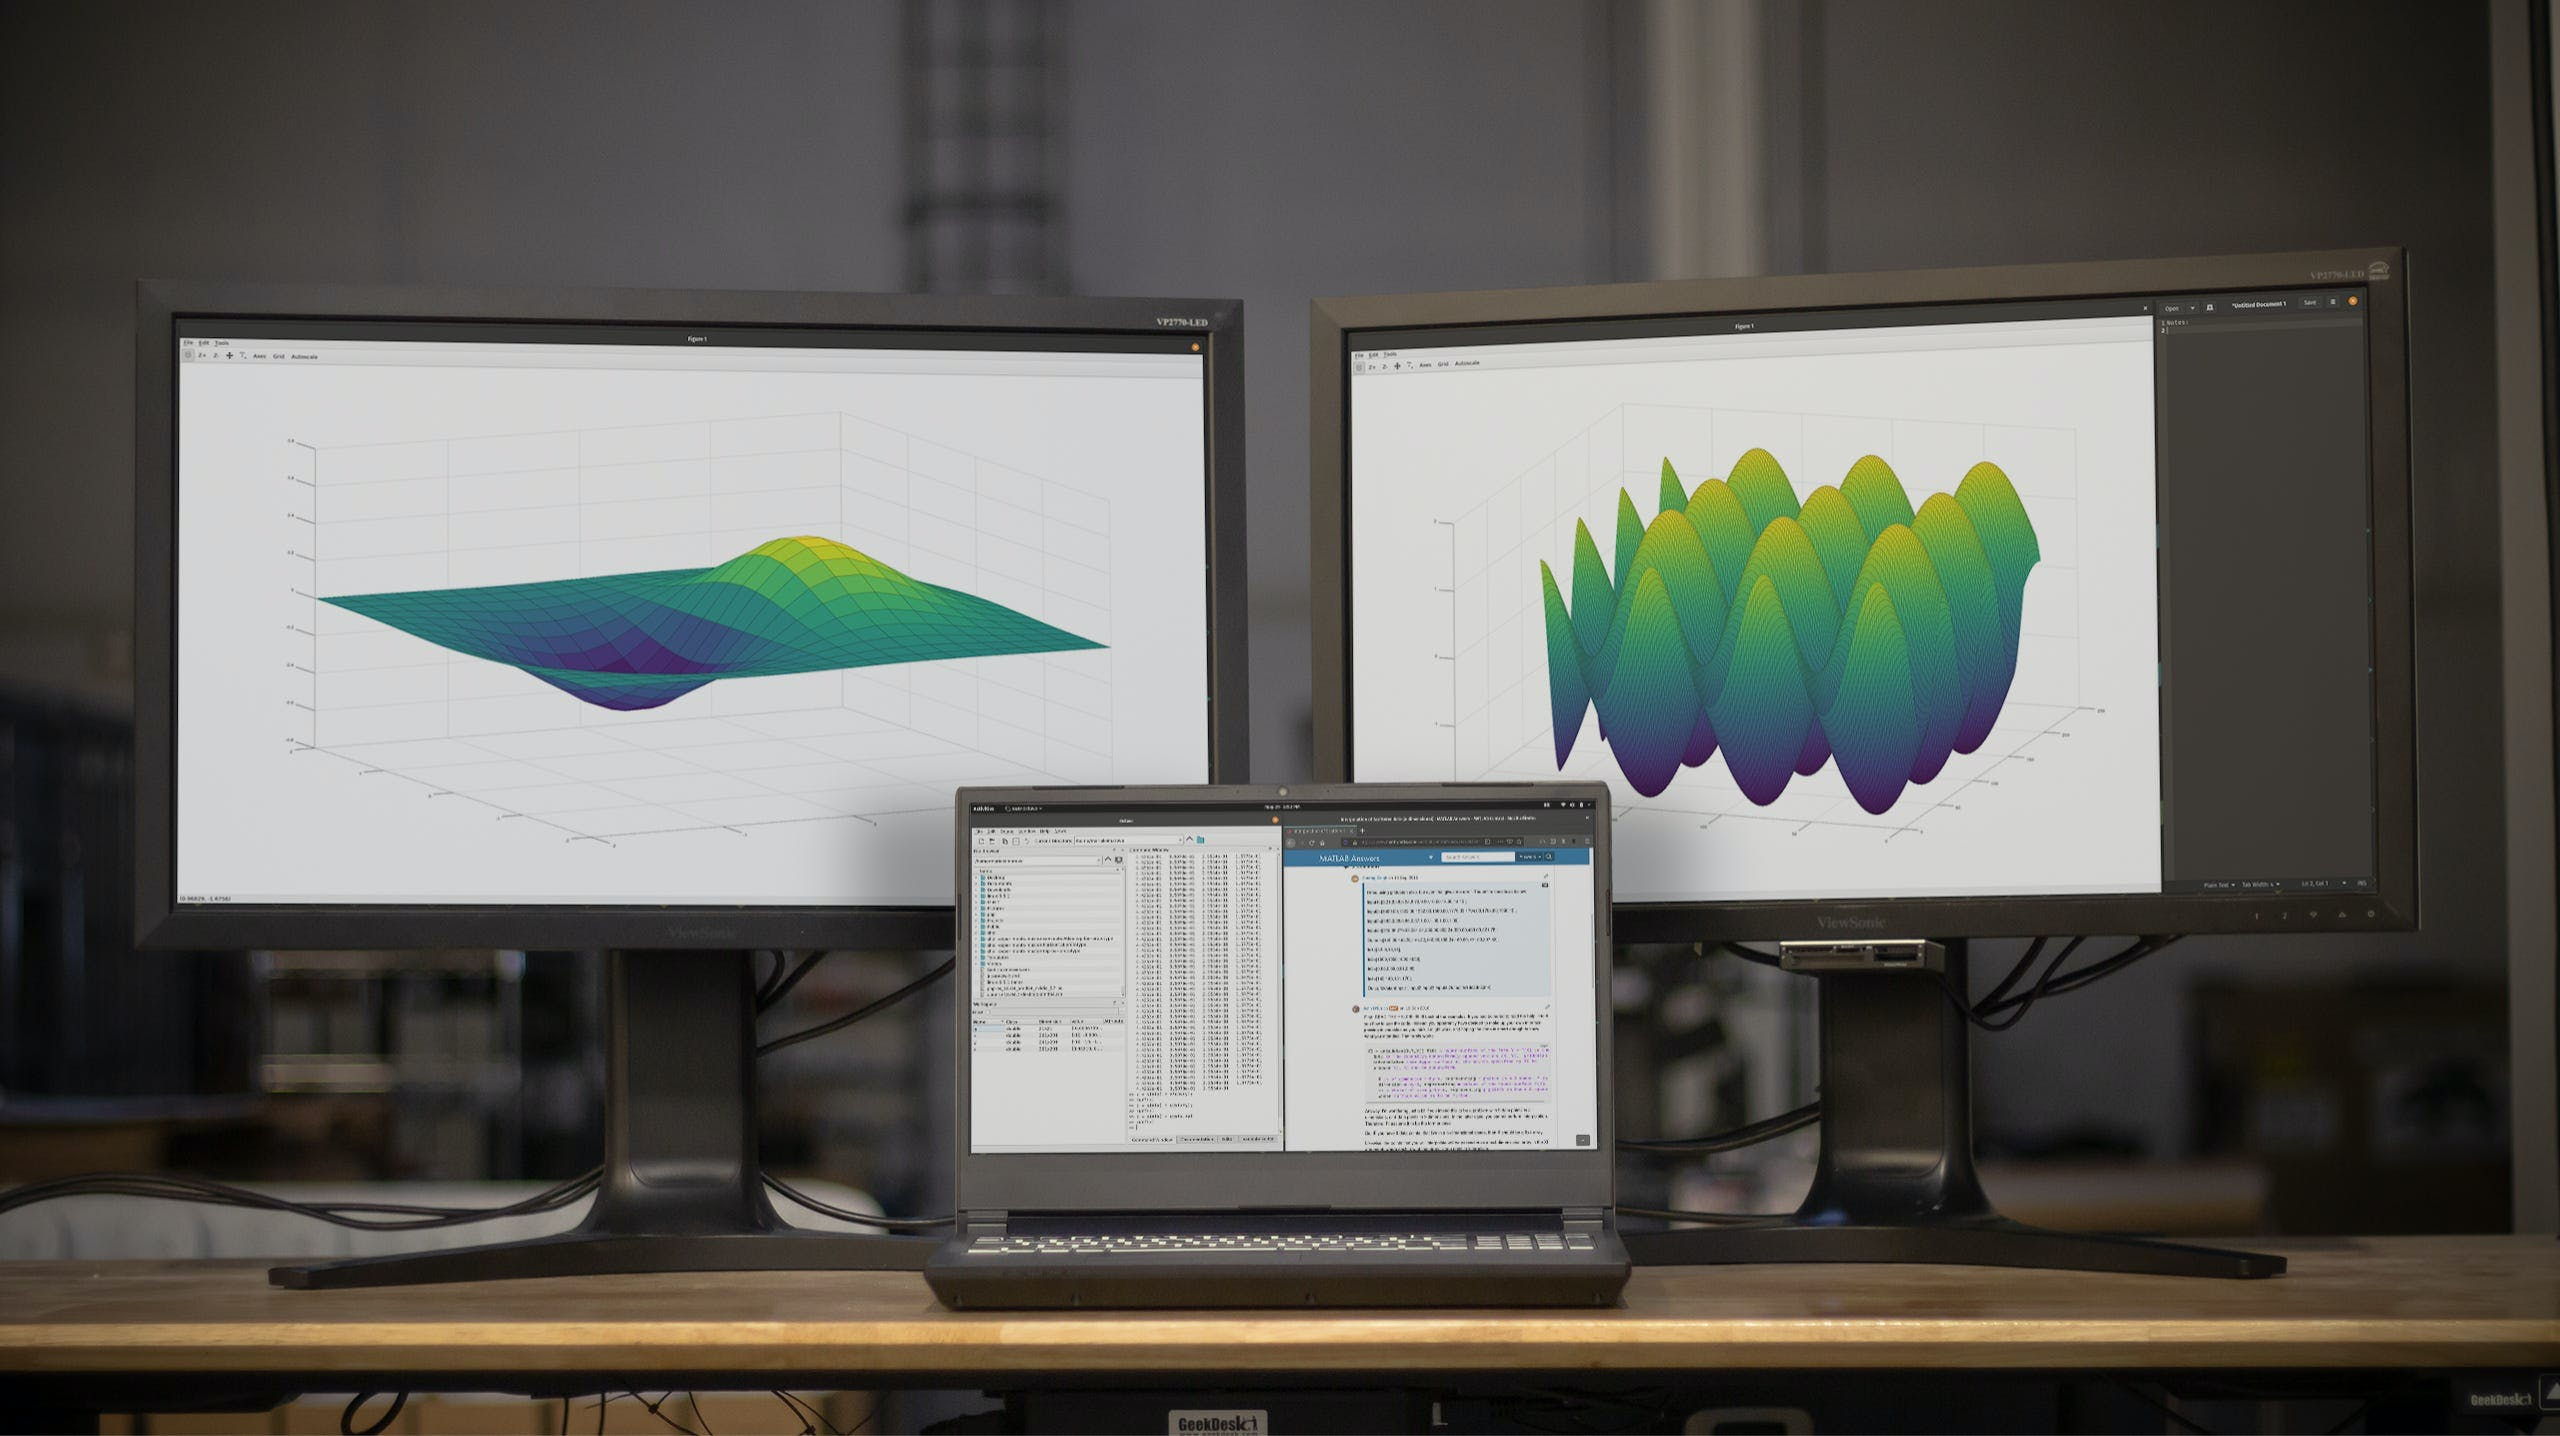 The Serval WS running and graphing scientific computations across three displays.